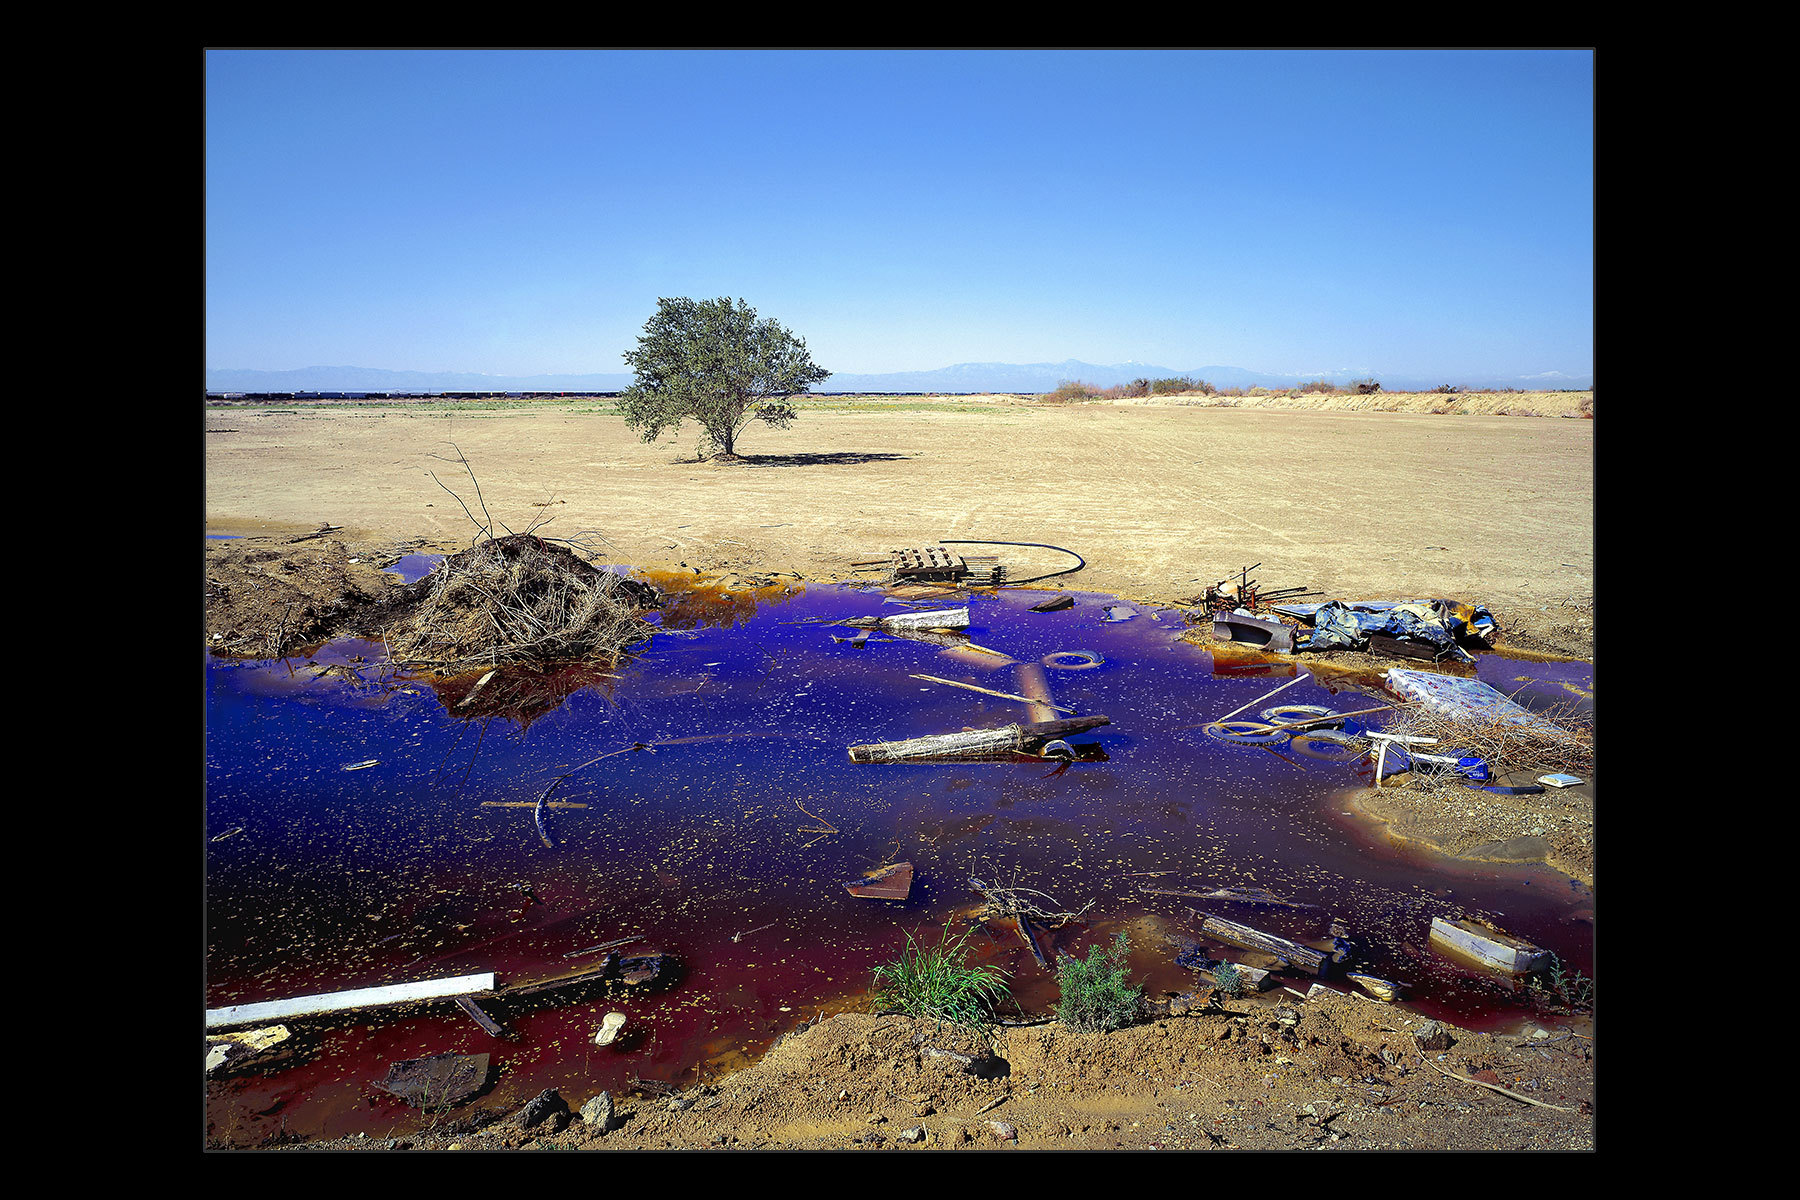 polluted run-off, Niland